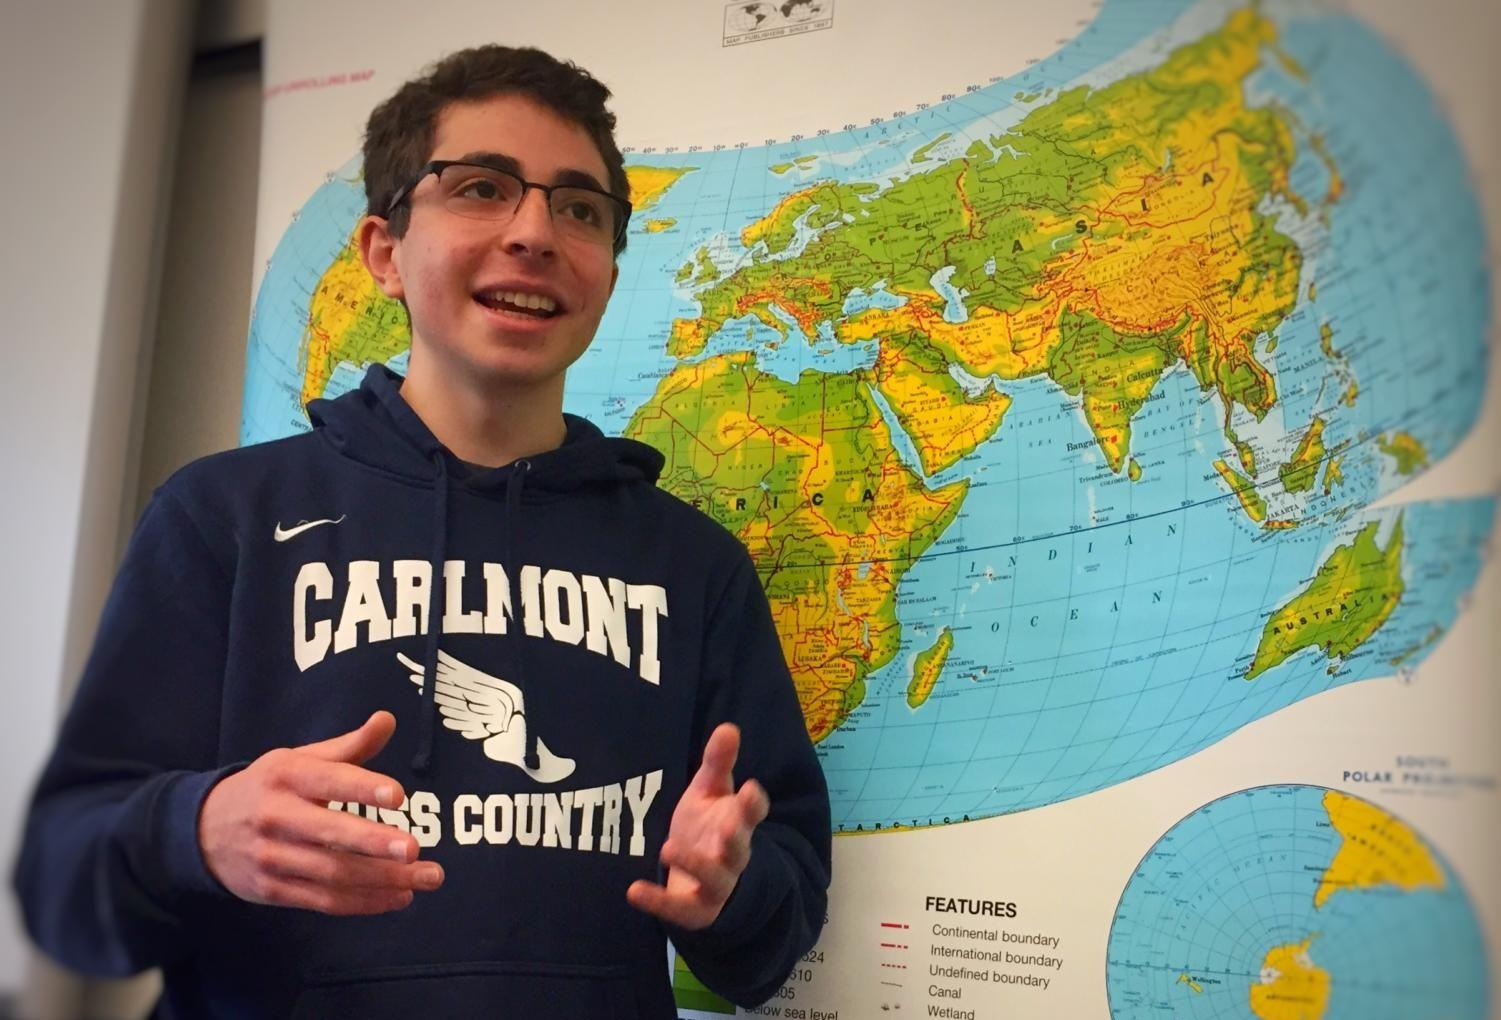 Model United Nations Club President Alex Derhacobian gives a presentation on the current global conflicts surrounding politics during one of their regular Monday lunch meetings.